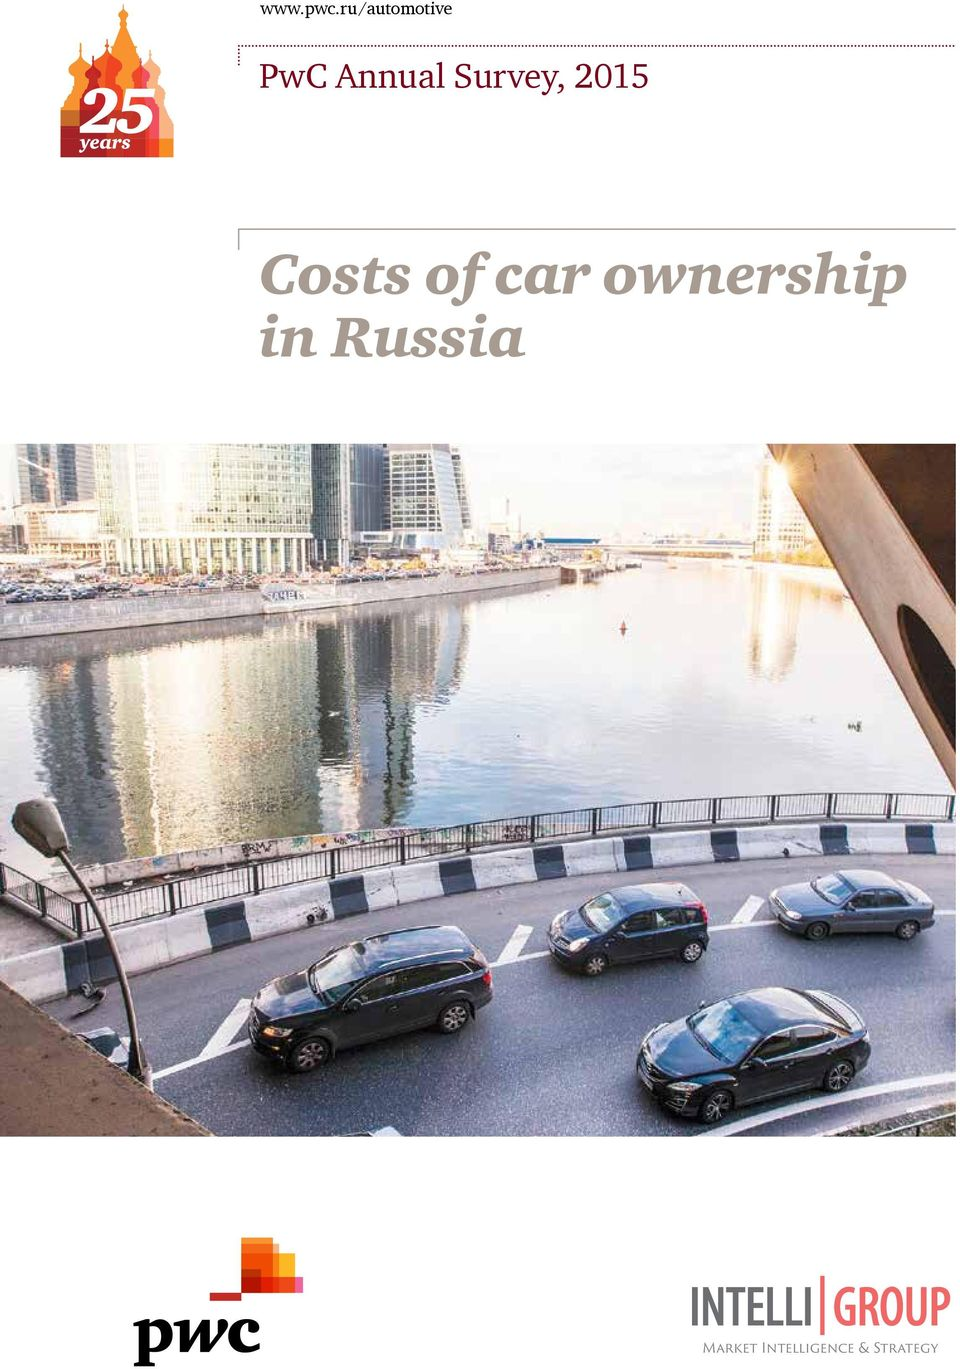 Survey, 2015 Costs of car